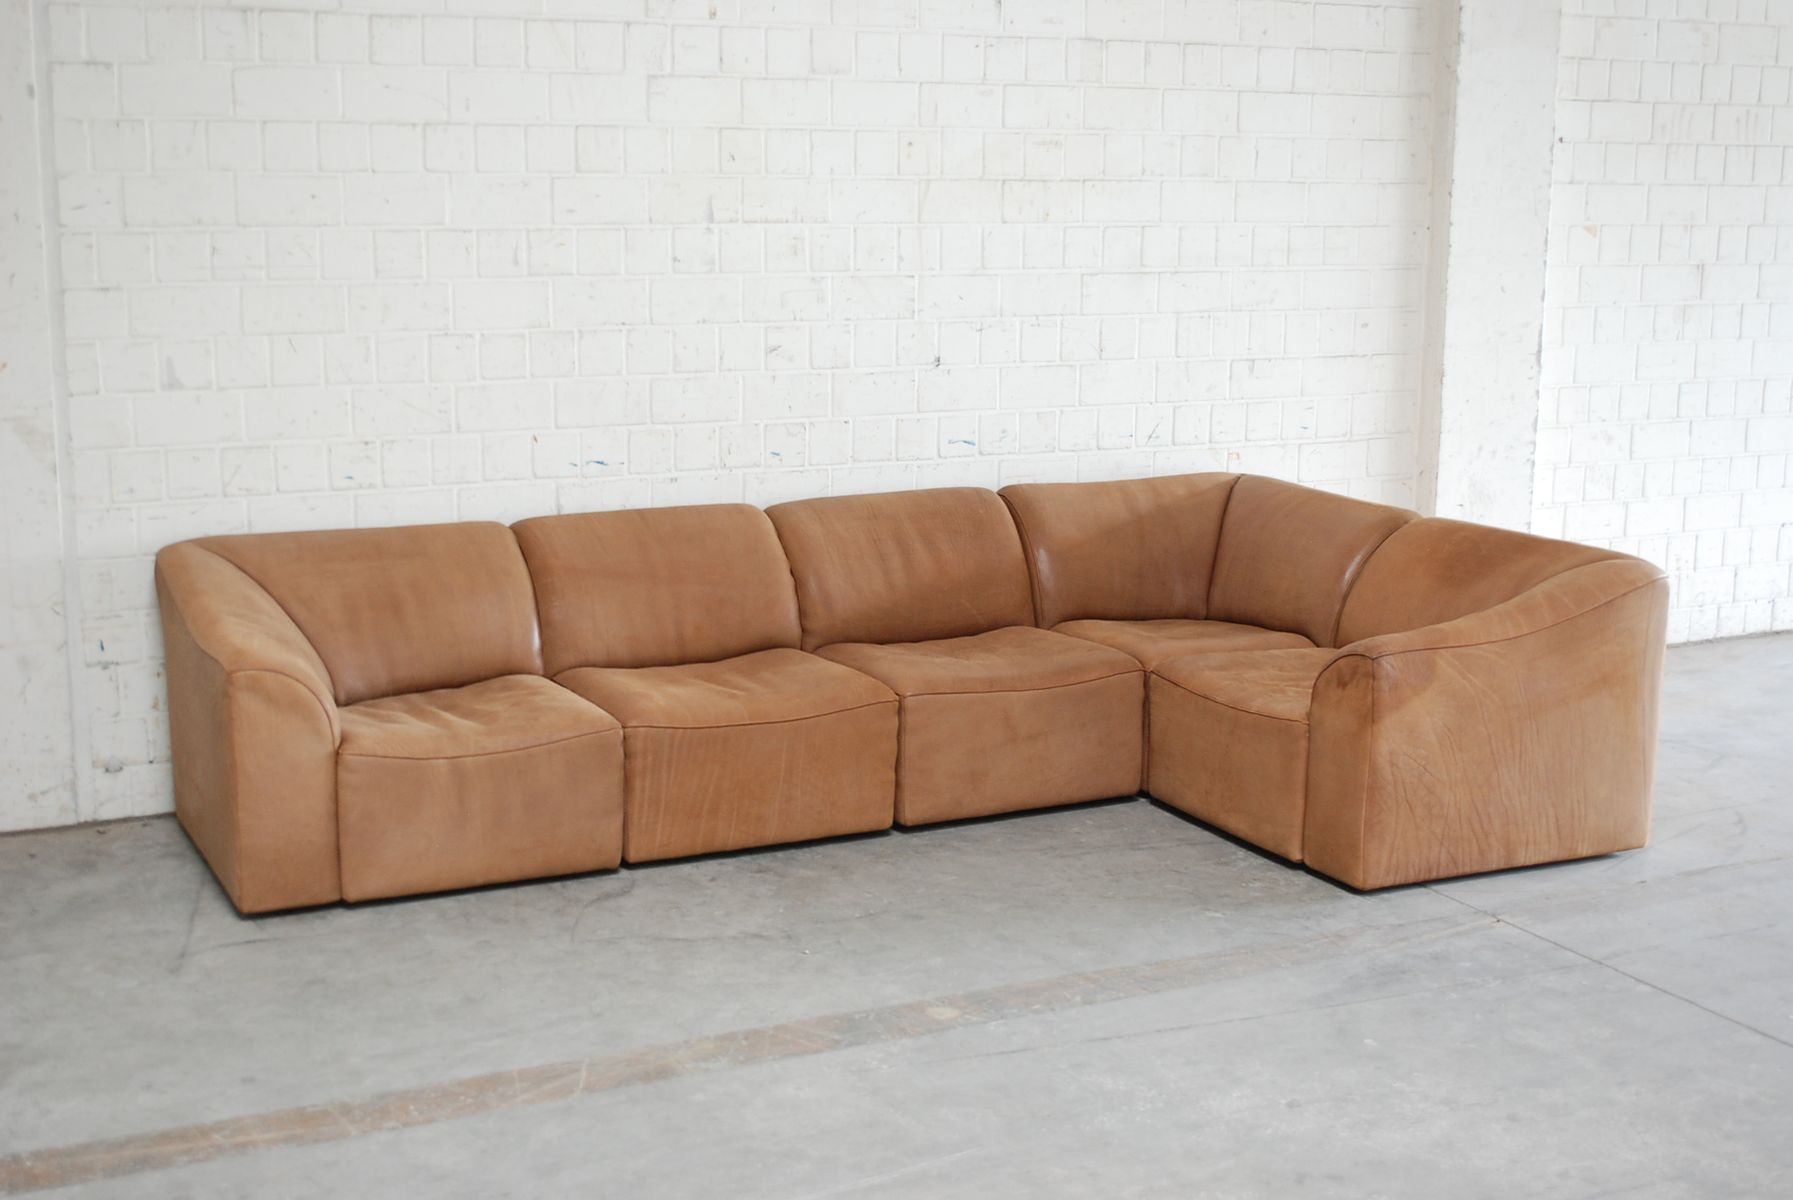 modular ds 10 leather sofa from de sede 1985 for sale at. Black Bedroom Furniture Sets. Home Design Ideas